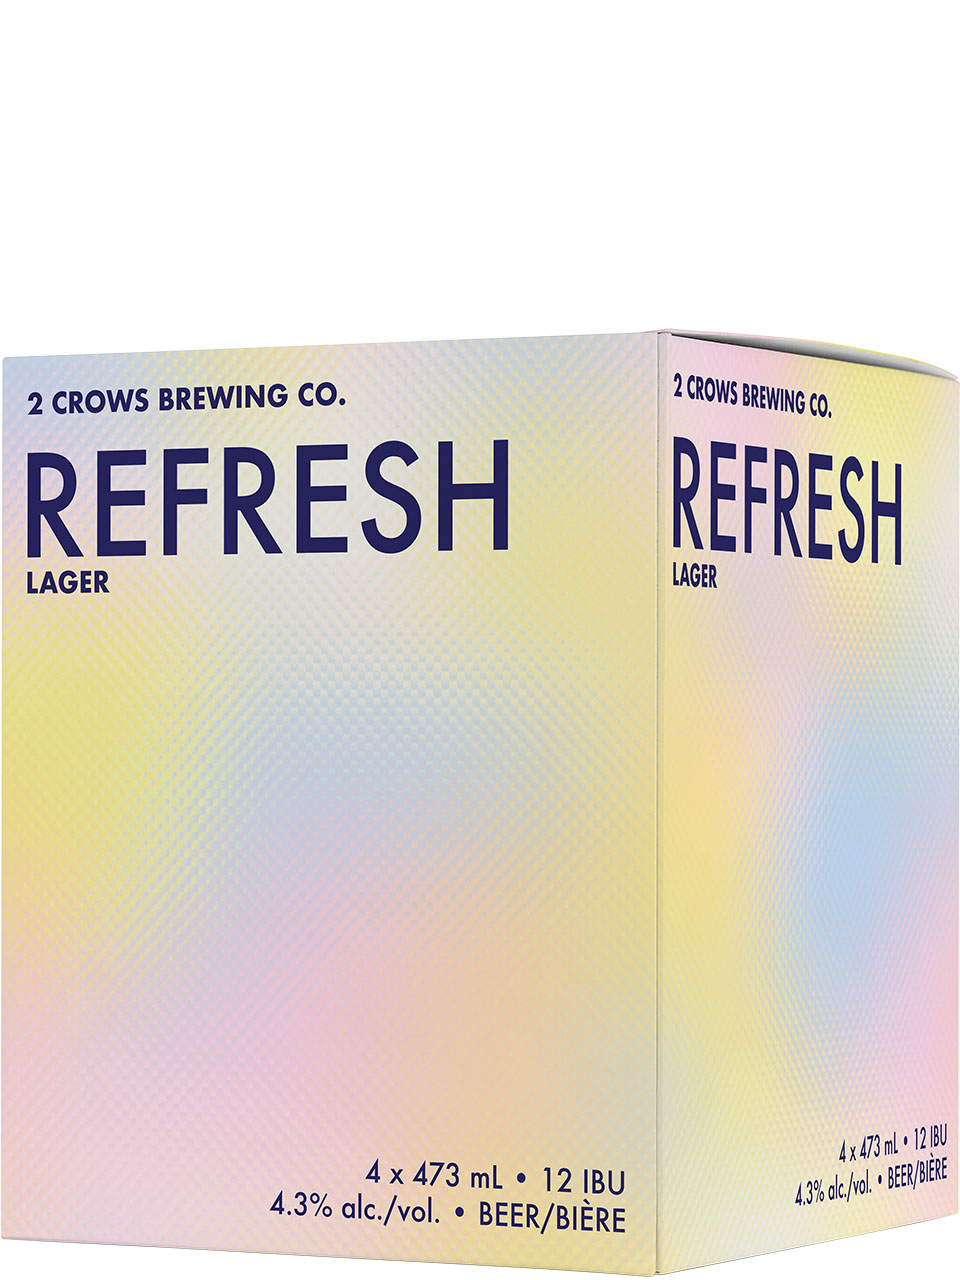 2 Crows Refresh Dry-Hopped Lager 4 Pack Cans